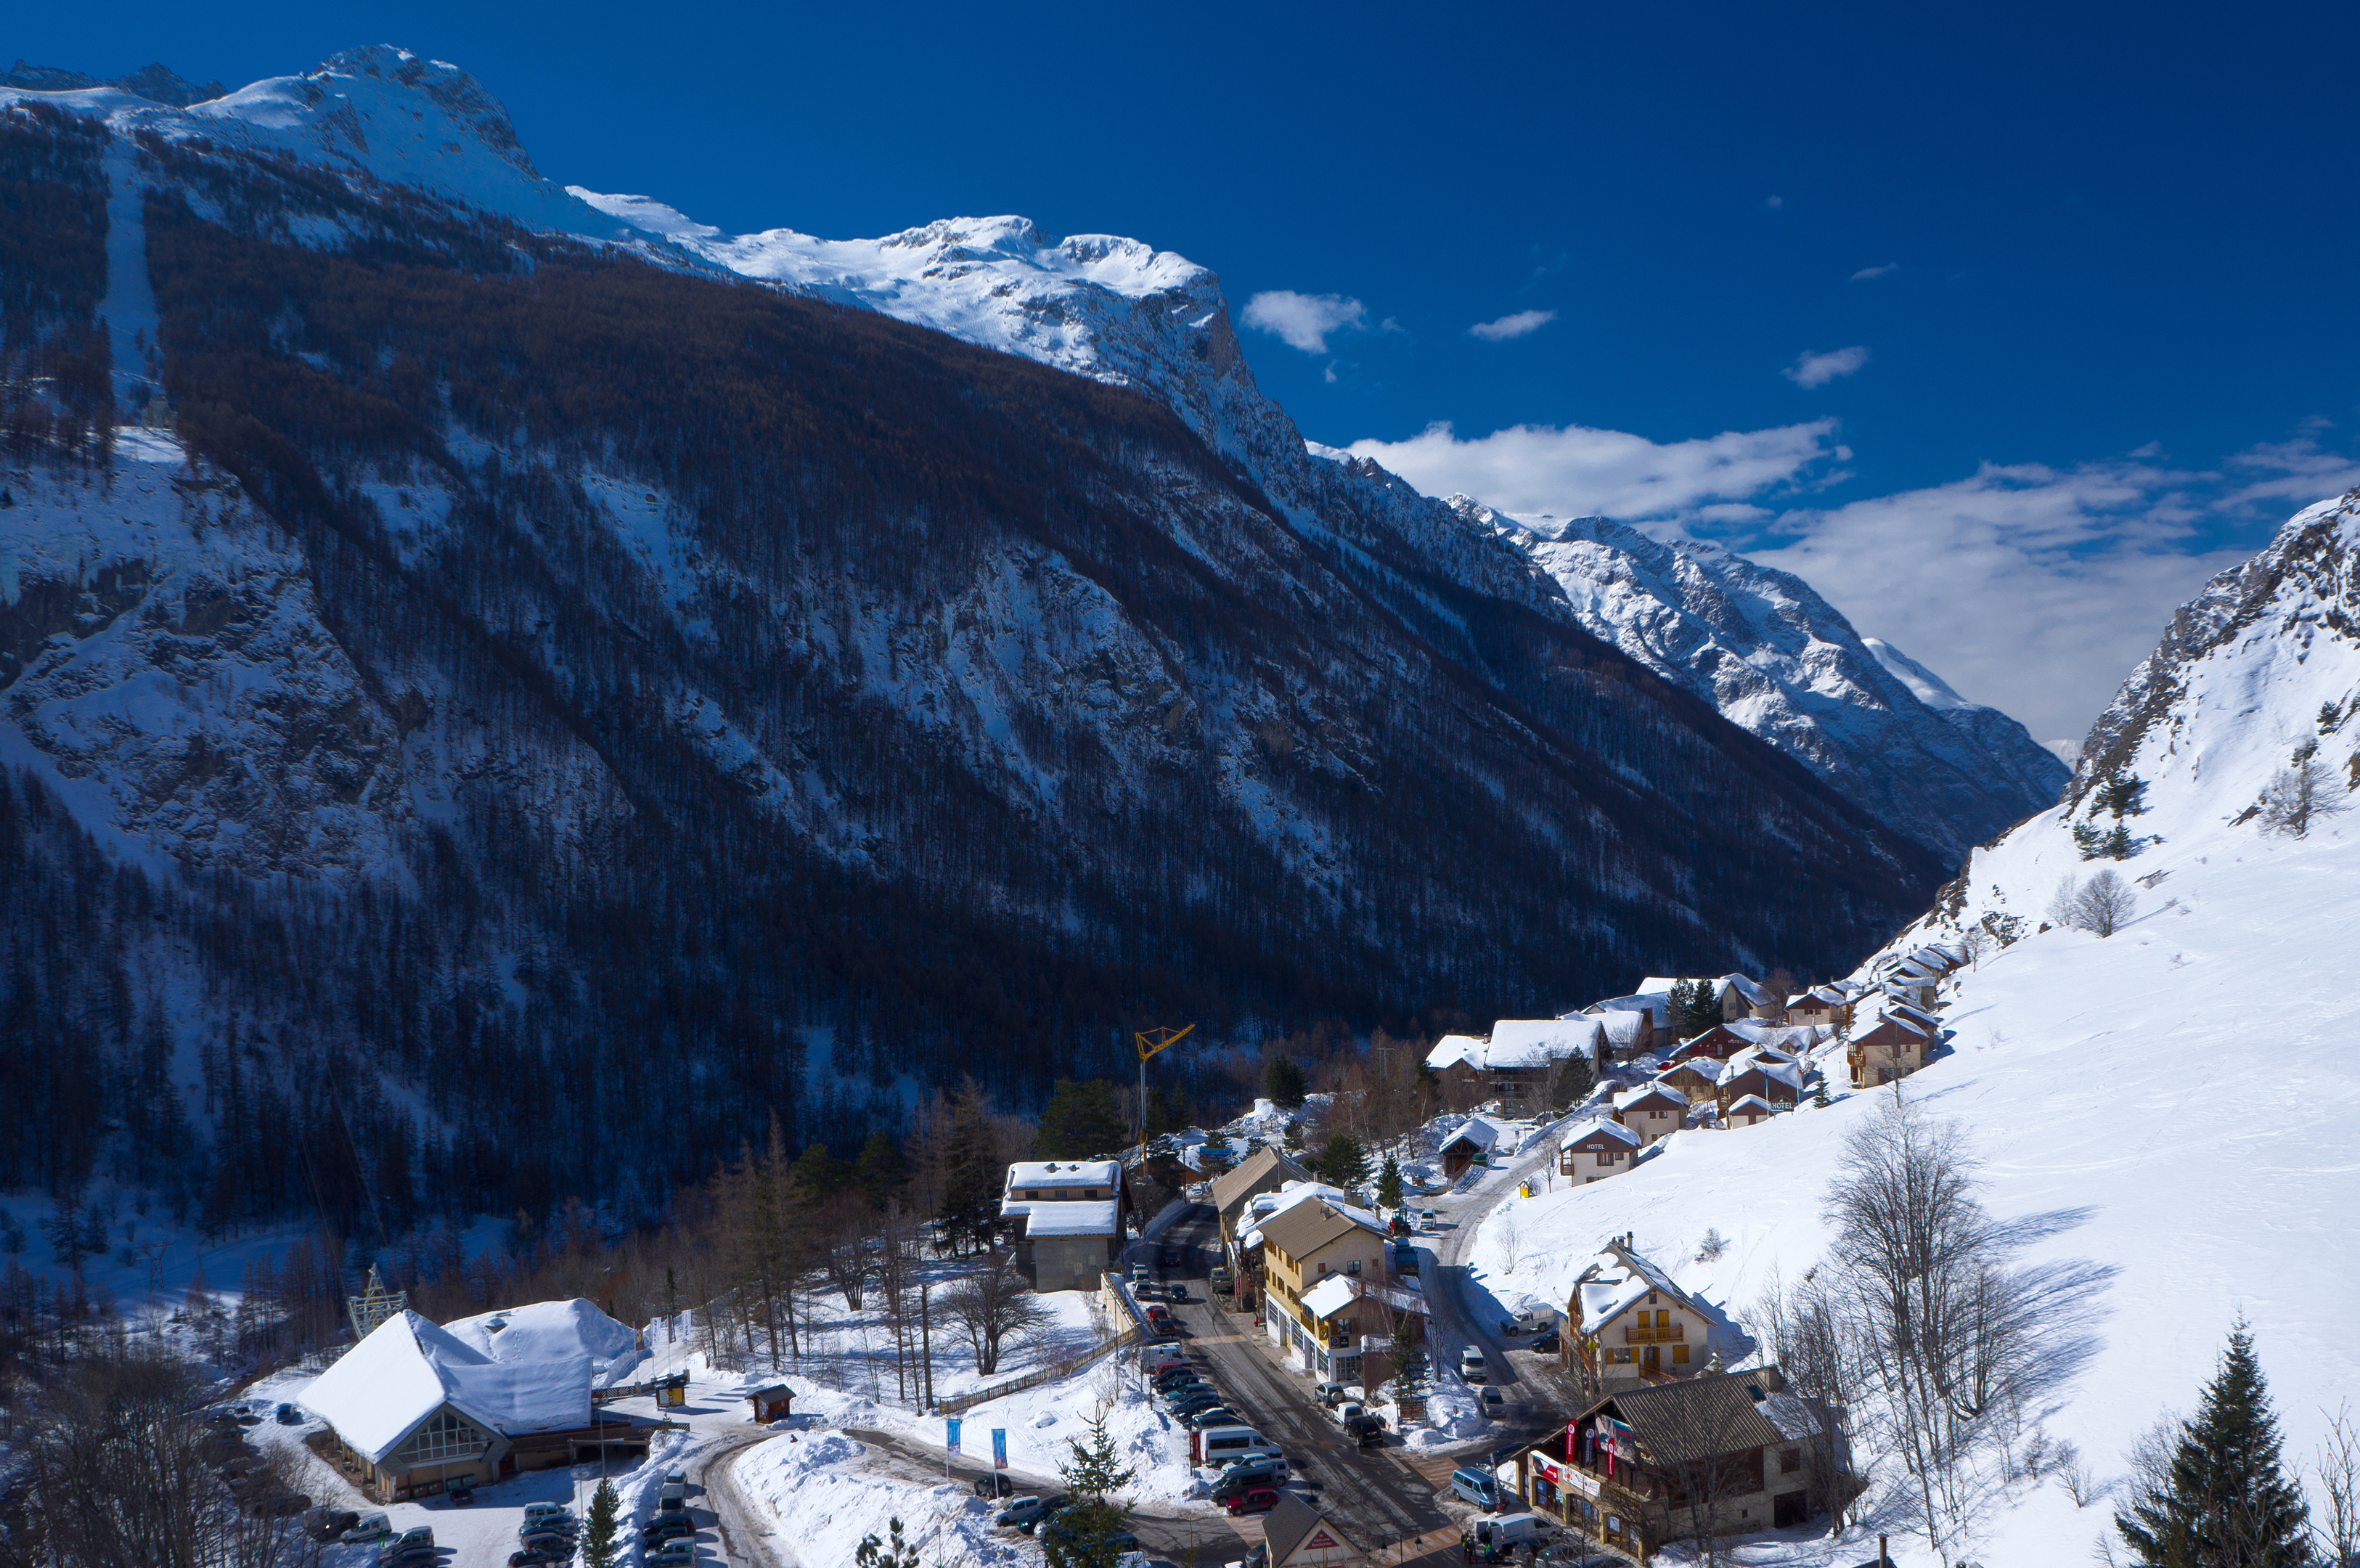 In the French Alps, two men were killed near the town of La Grave when an ice sheet broke off and crashed down on them